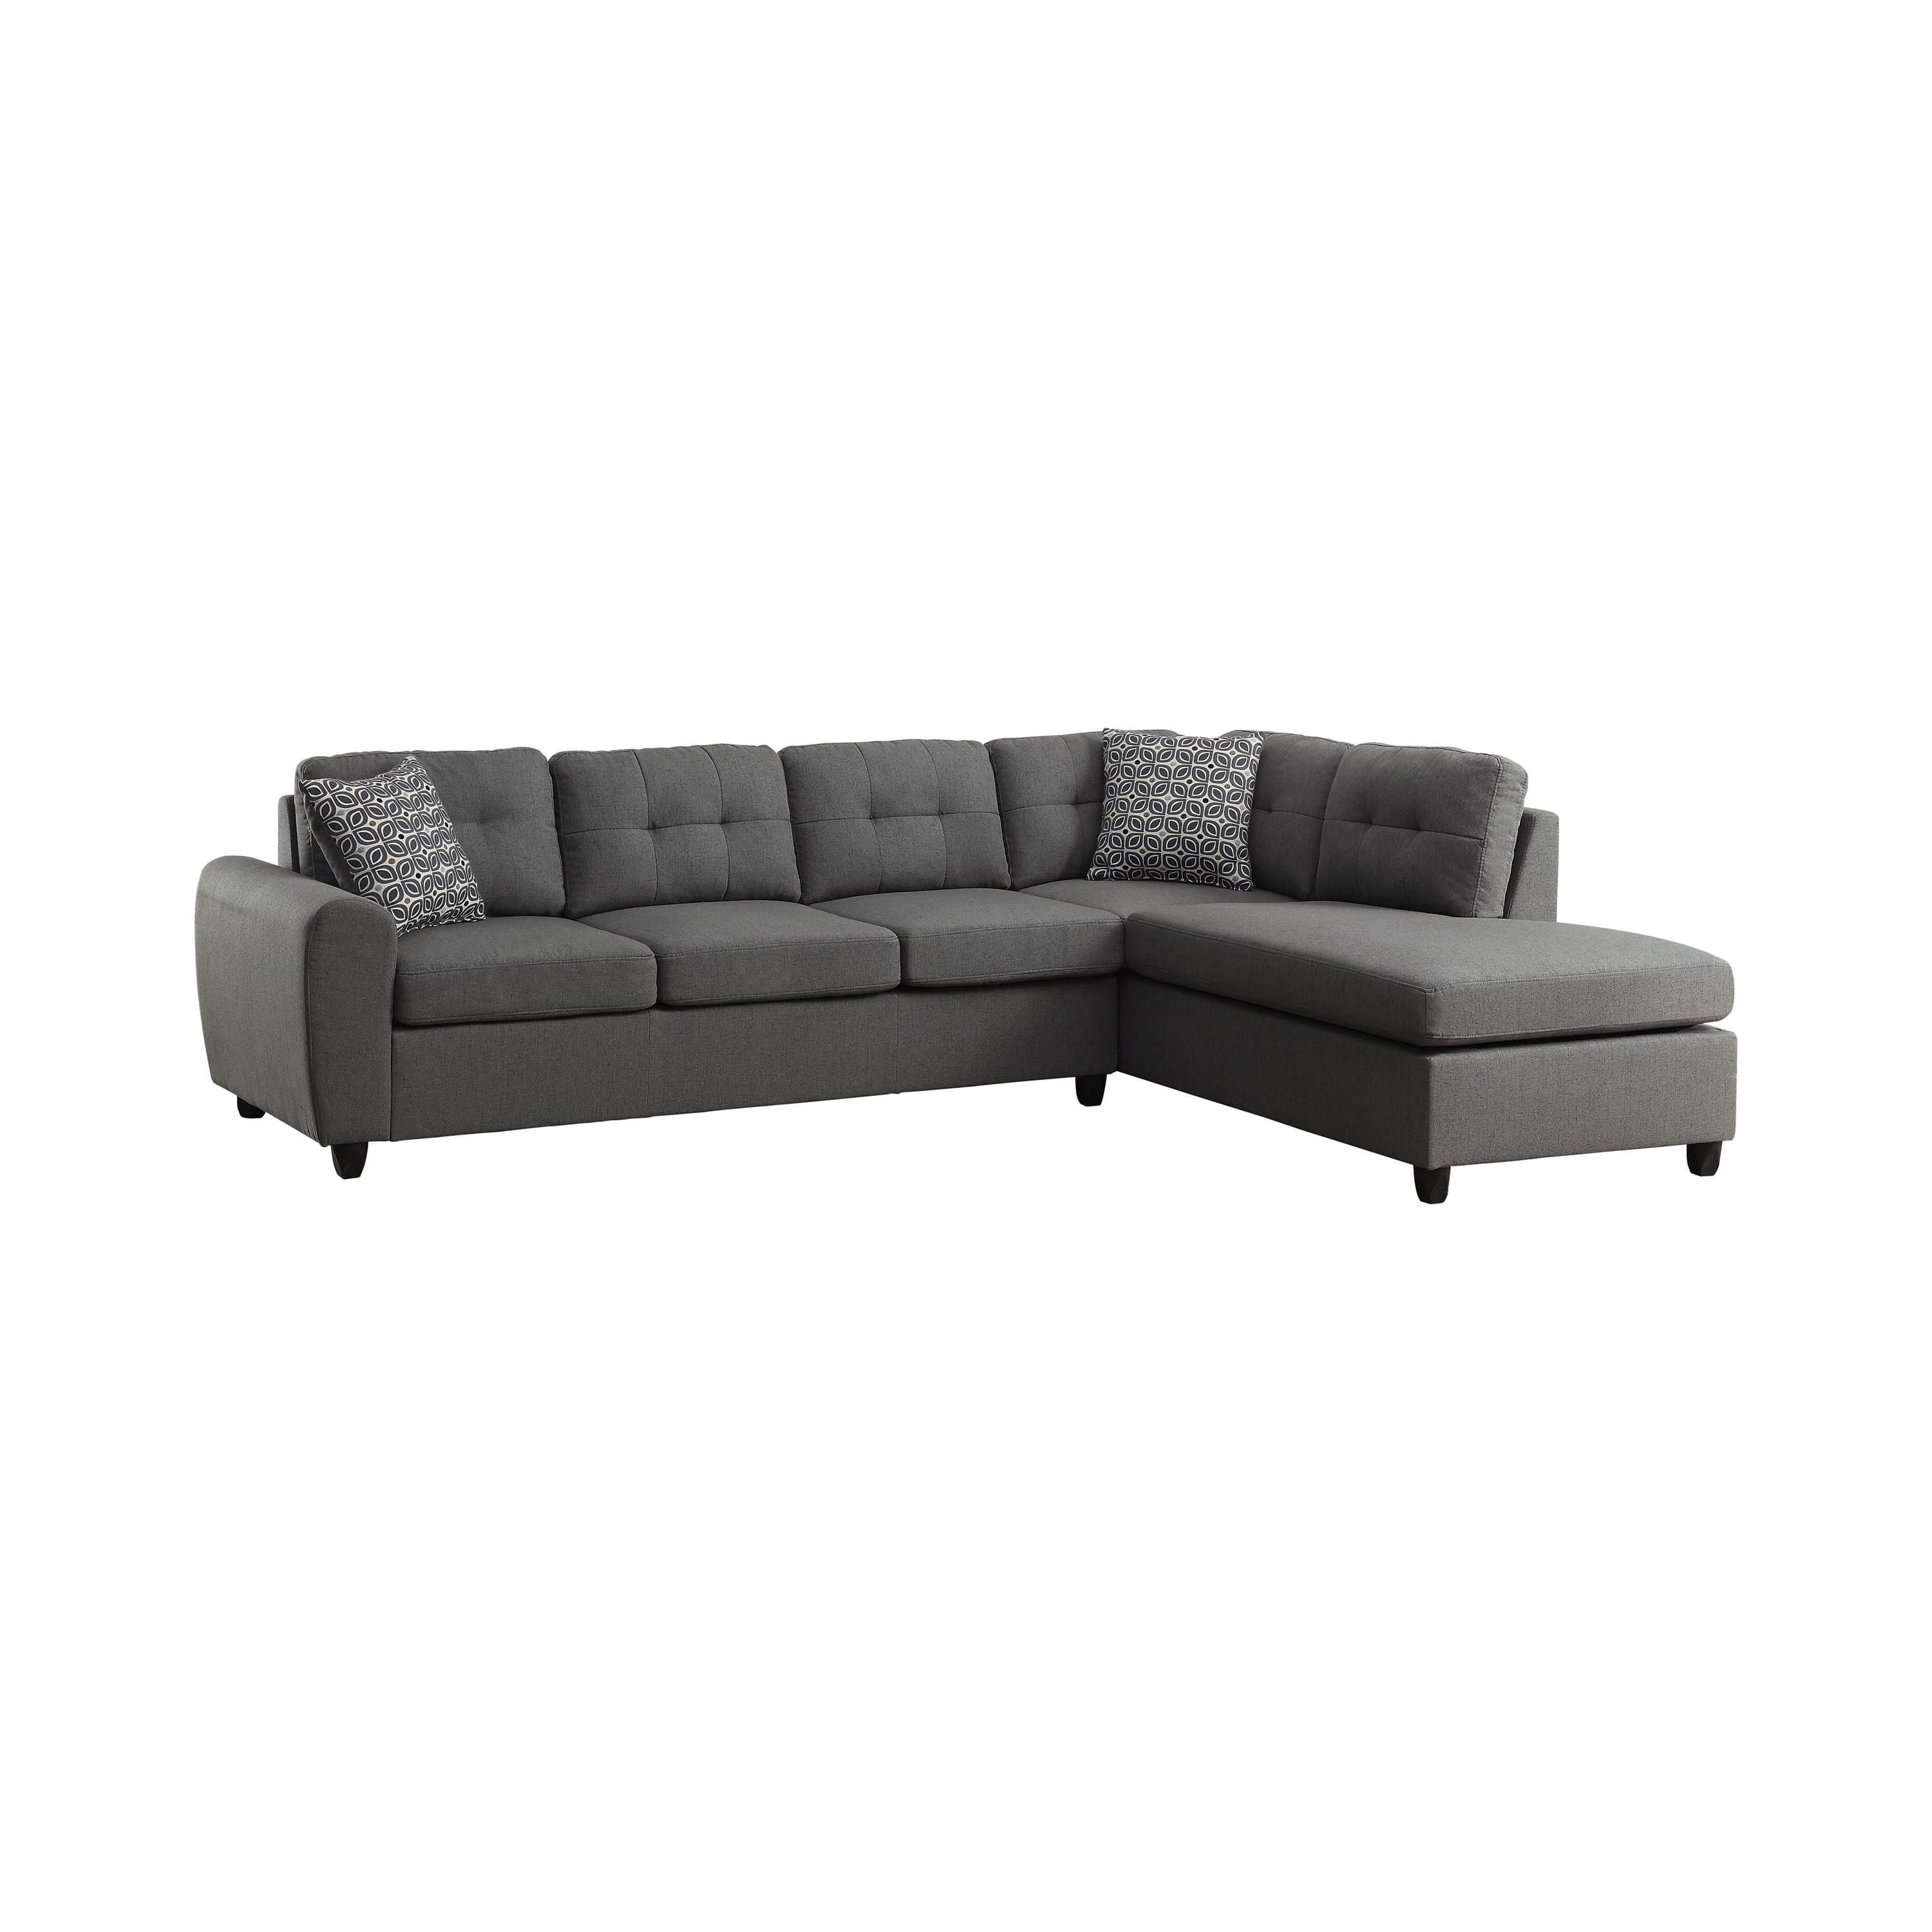 stonenesse grey tufted sectional sofa by coaster fine furniture